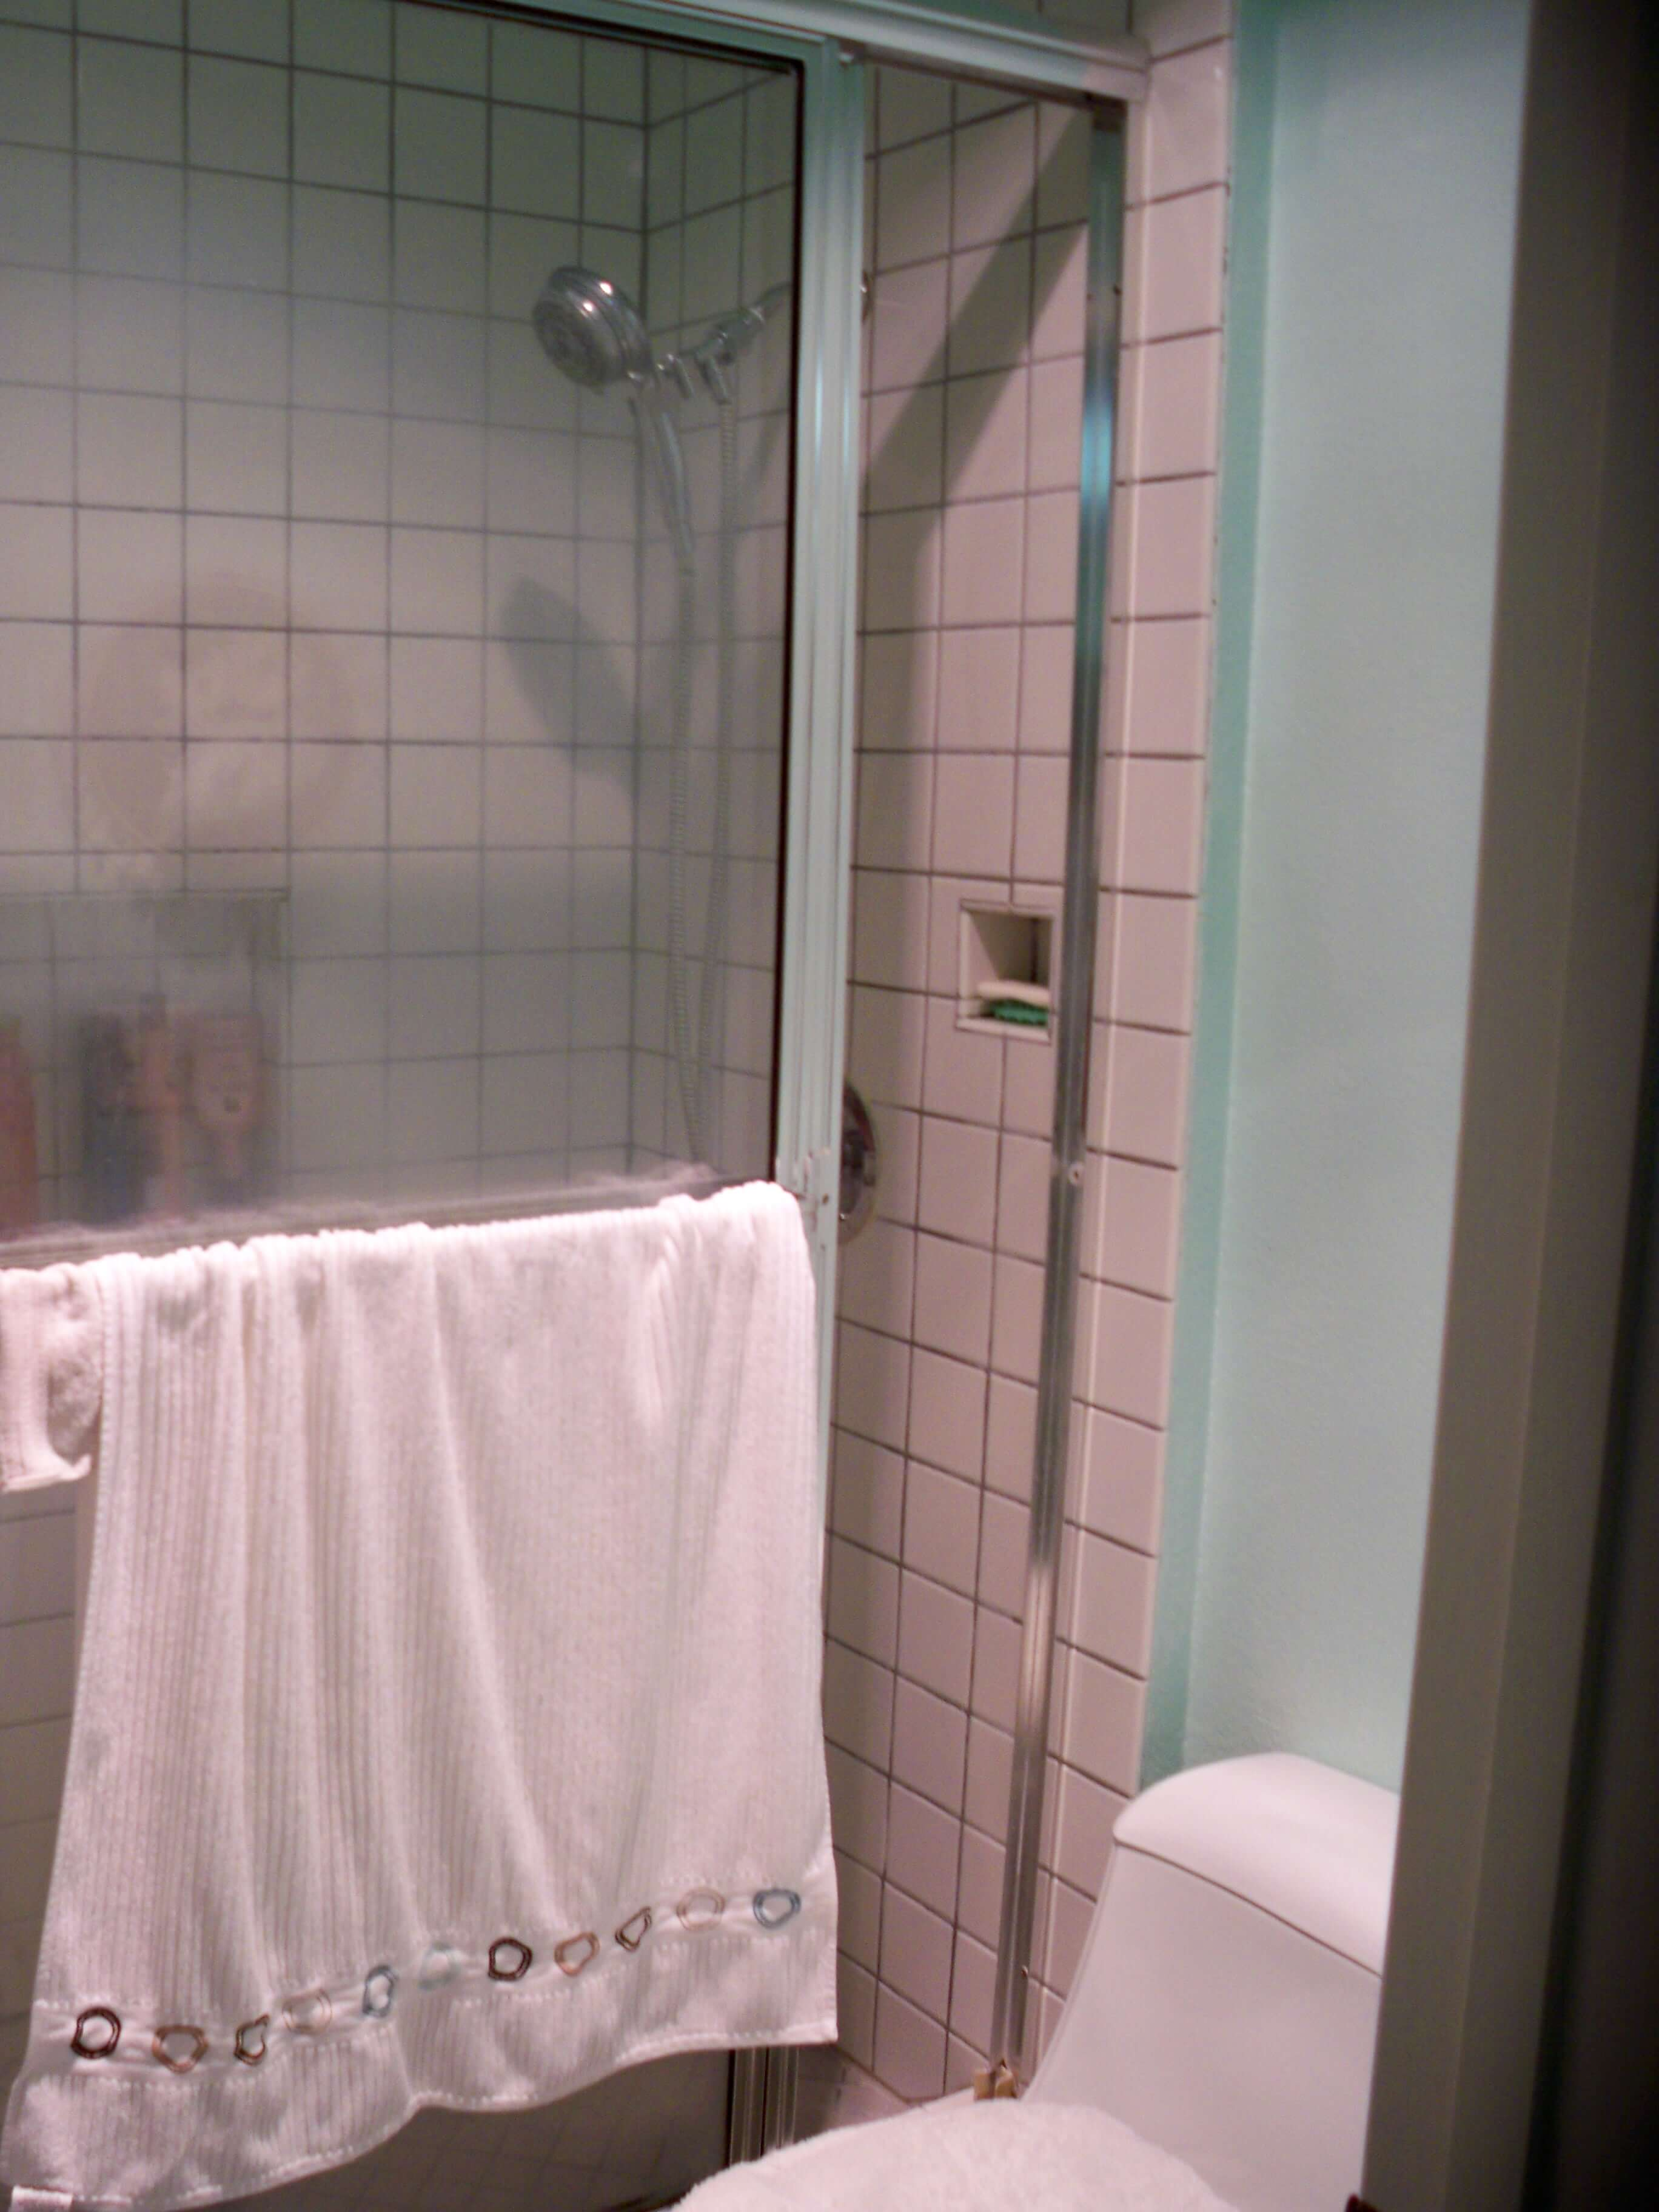 Ours Bath 002